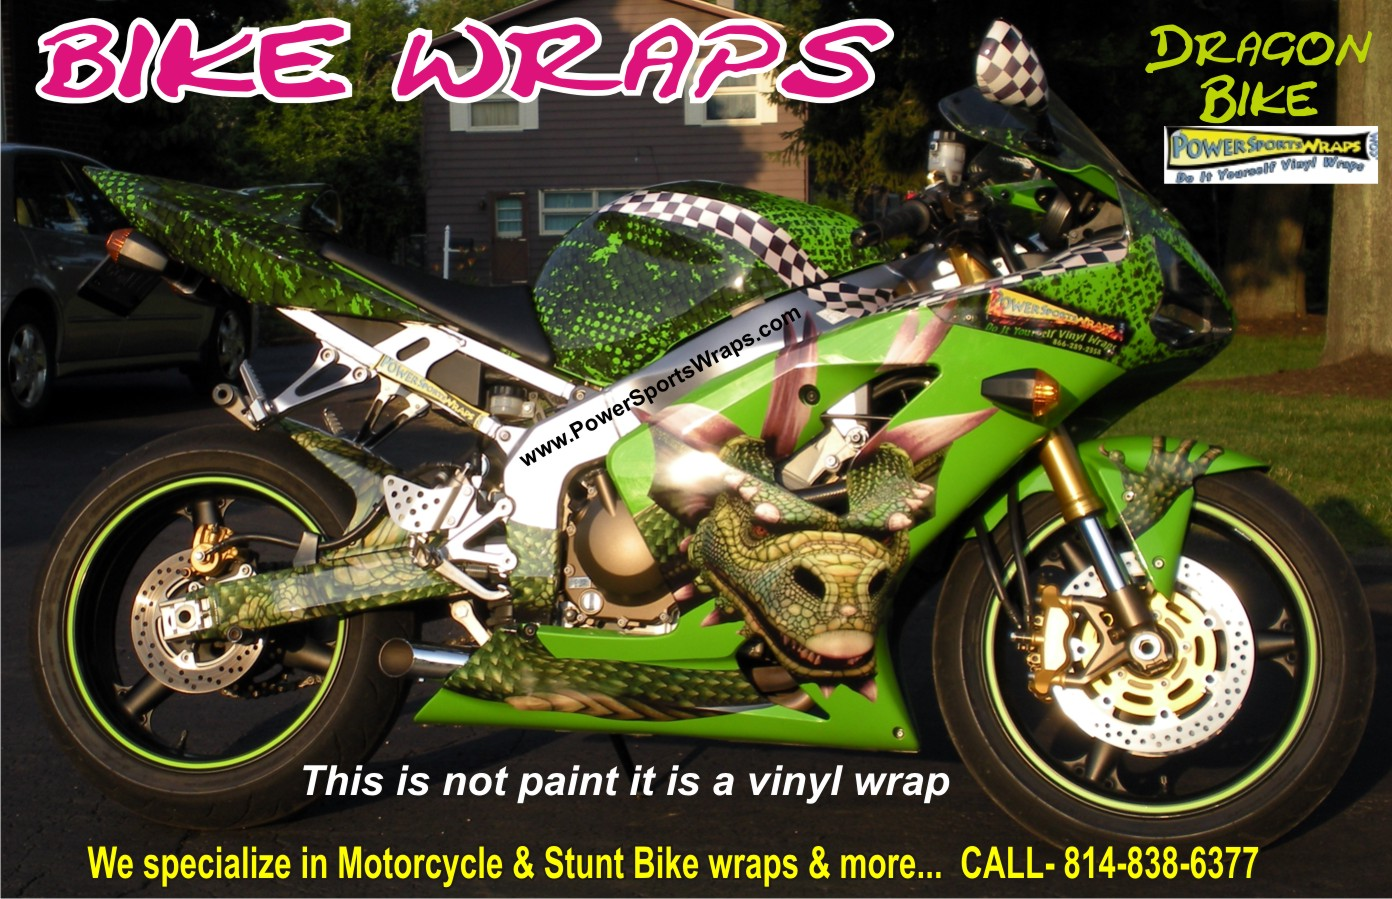 Kawasaki Wrap Archives Powersportswrapscom - Vinyl bike wrapmotorcycle wrap archives powersportswrapscom